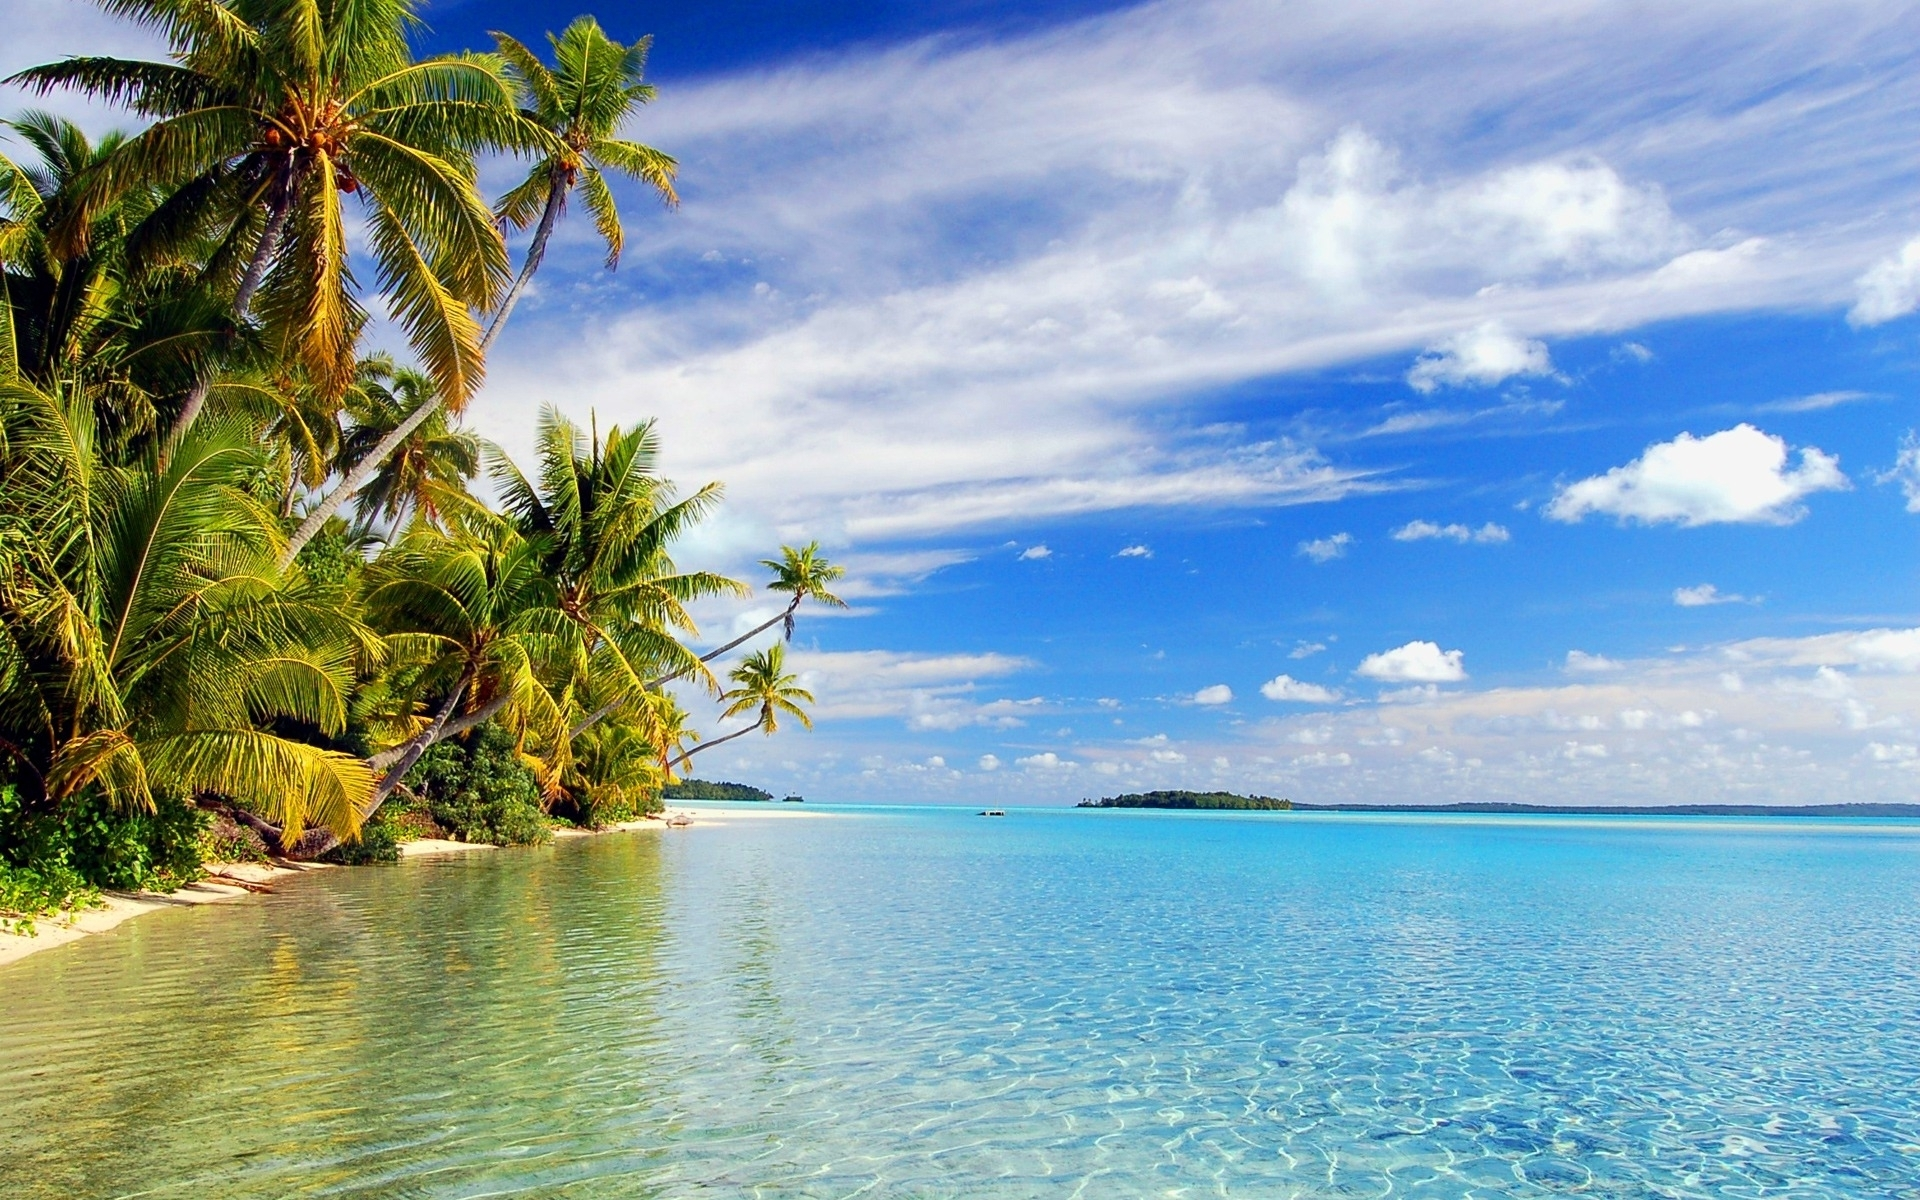 Tropical HD Wallpaper Background Image x ID